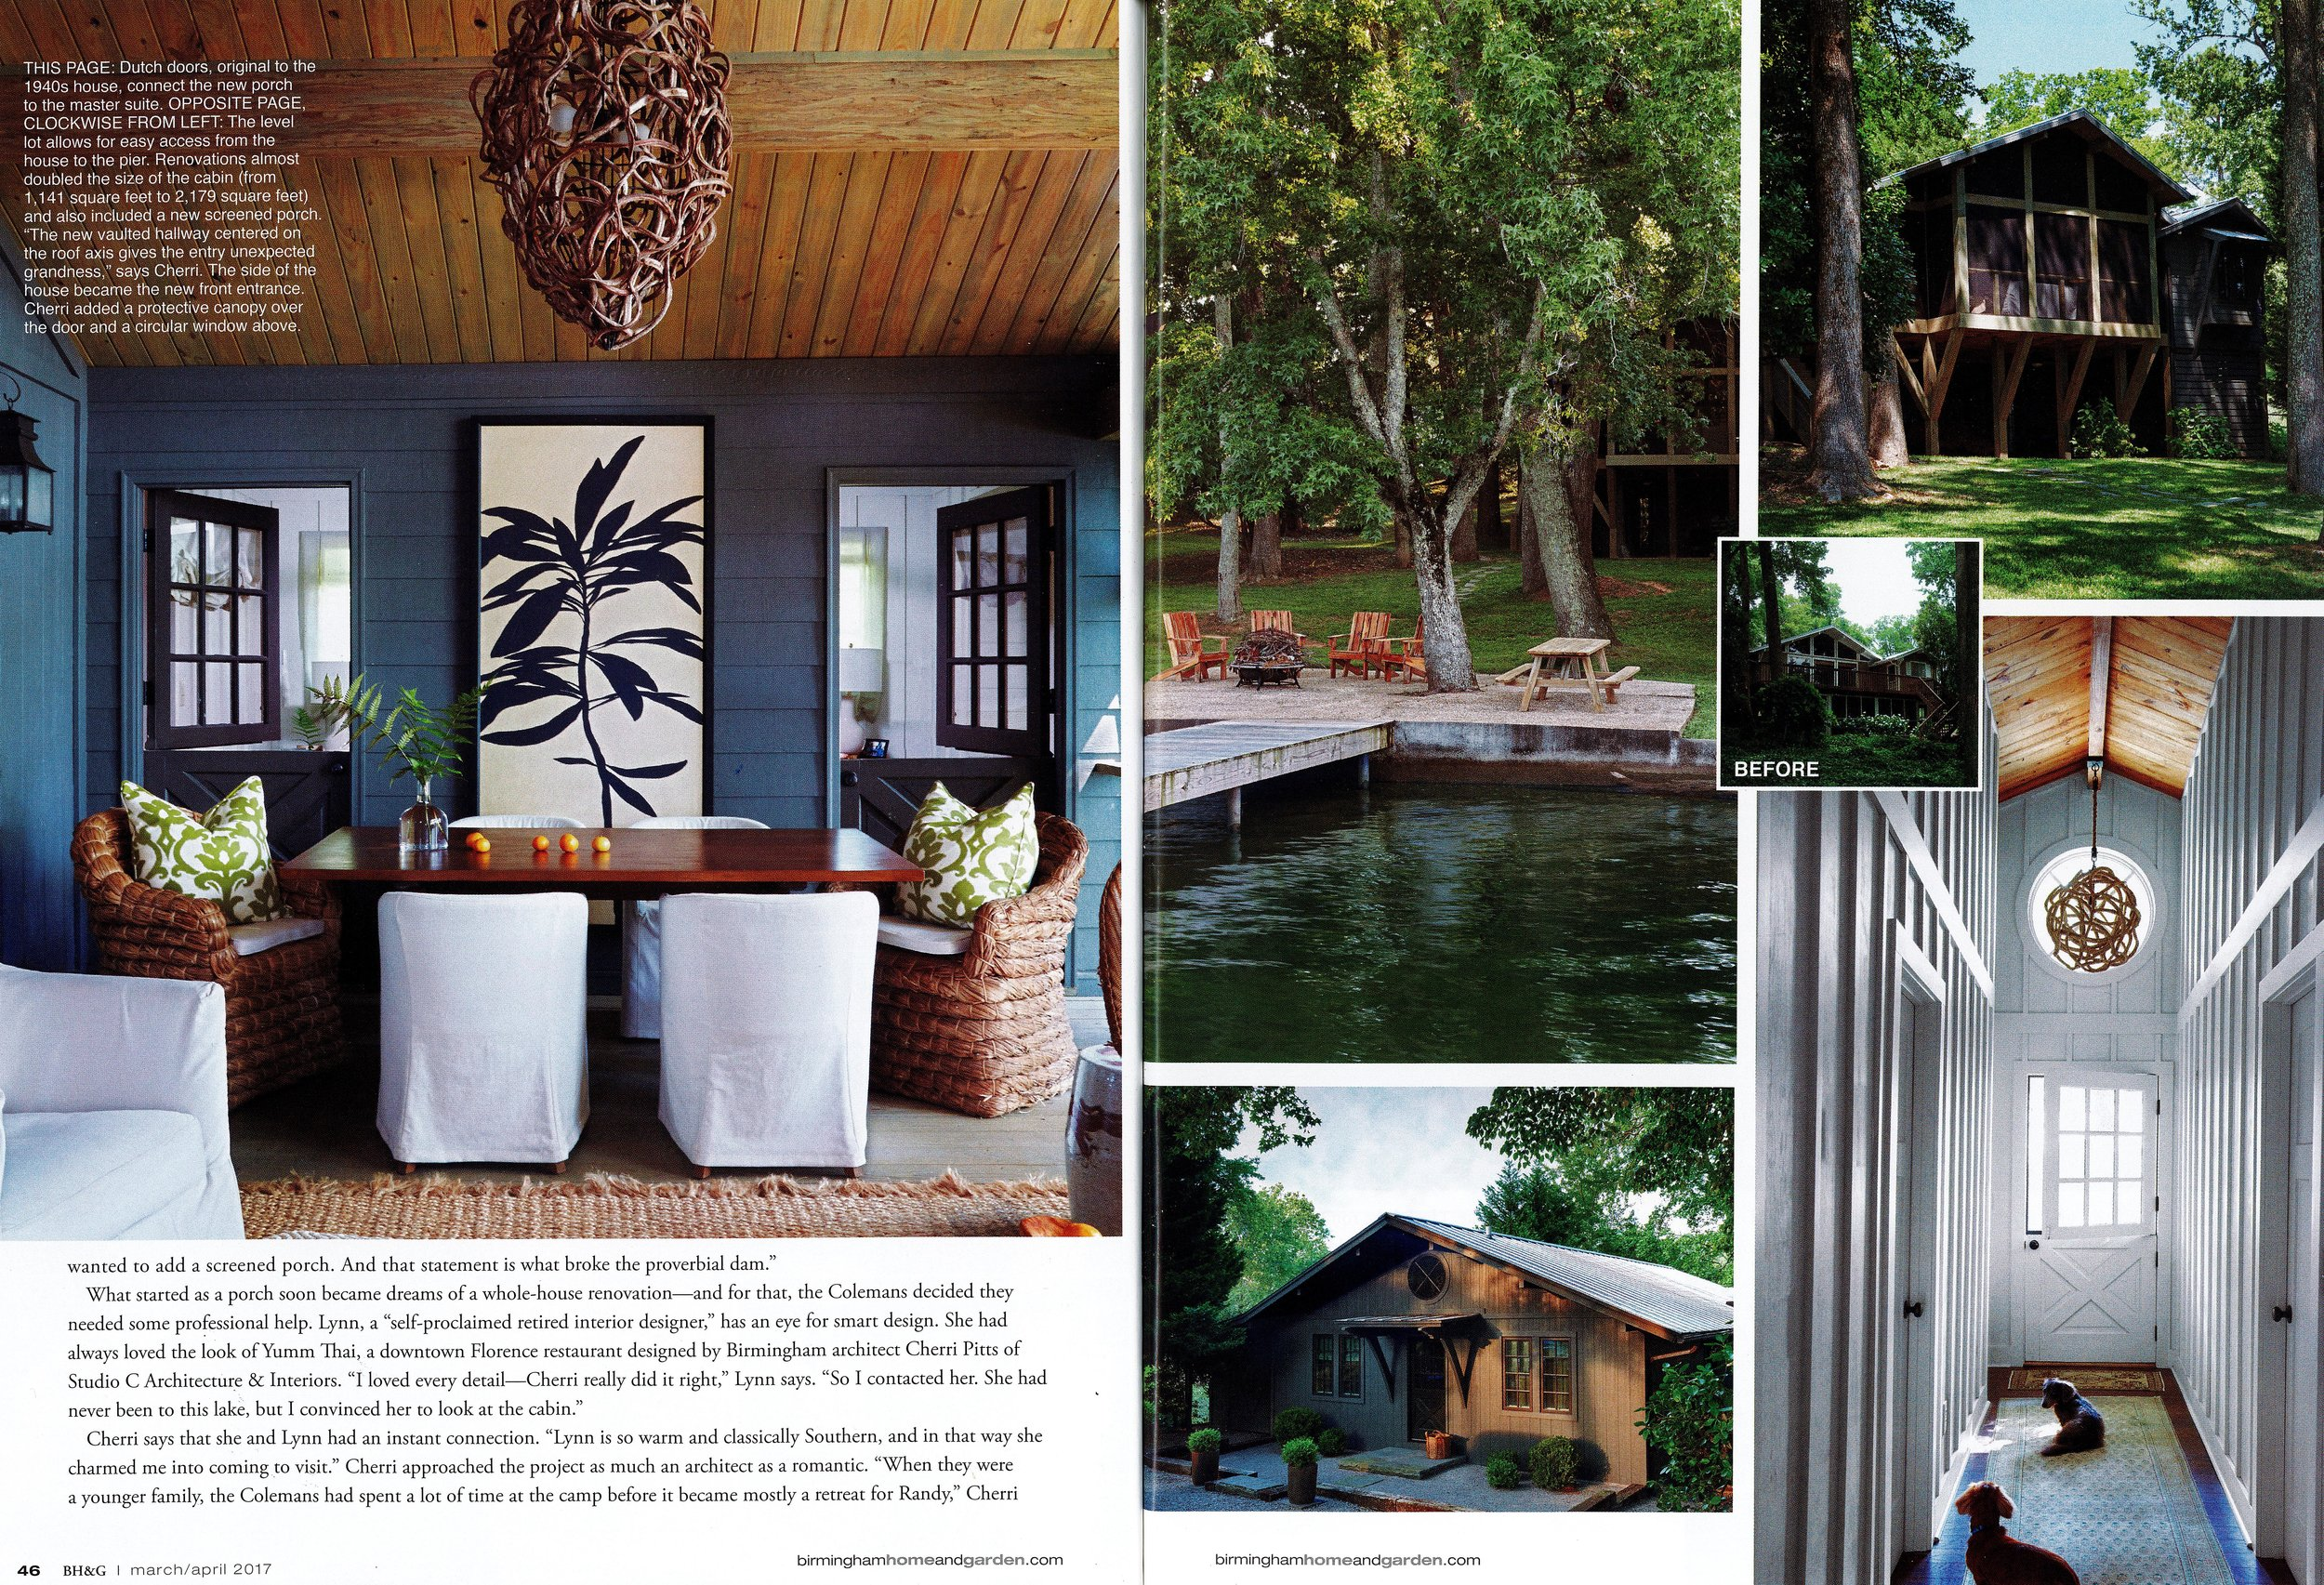 Birmingham Home & Garden magazine 2017 Camp Coleman page 4 architecture exterior and interior design Alabama